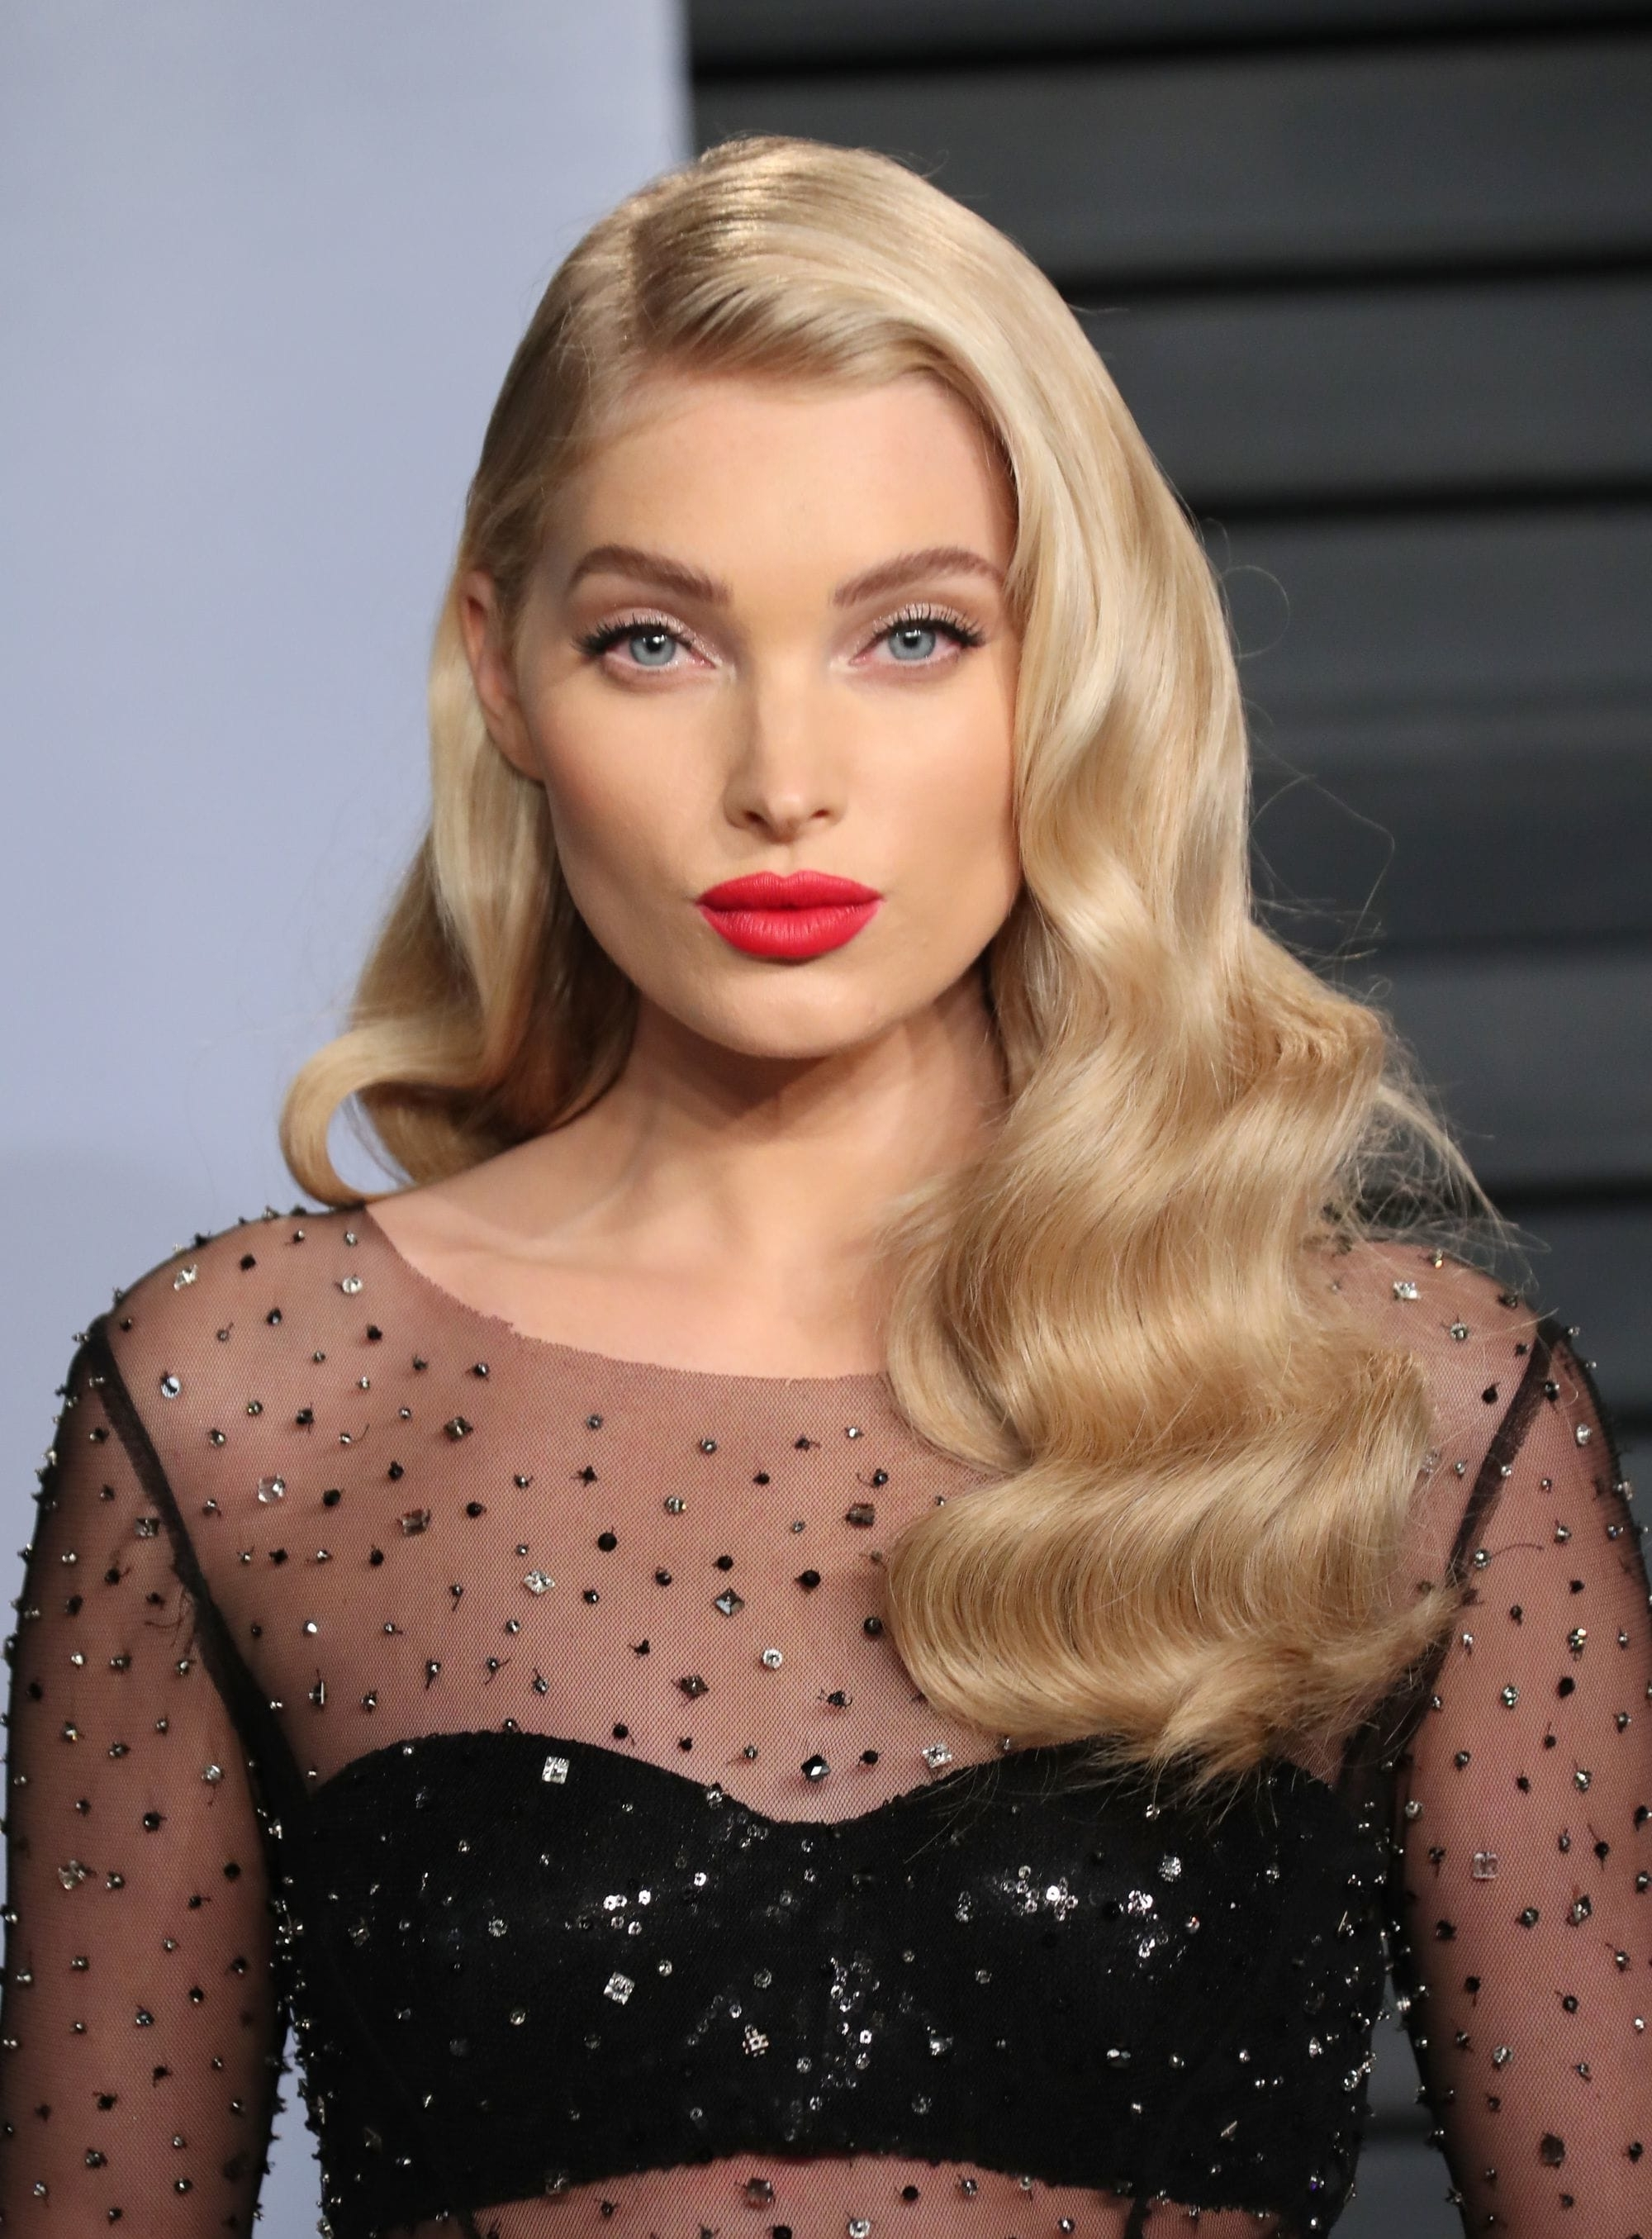 Latest Bubbly Blonde Pony Hairstyles Throughout Champagne Blonde: Hair Inspiration Gallery For This Bubbly, New Trend (View 7 of 20)